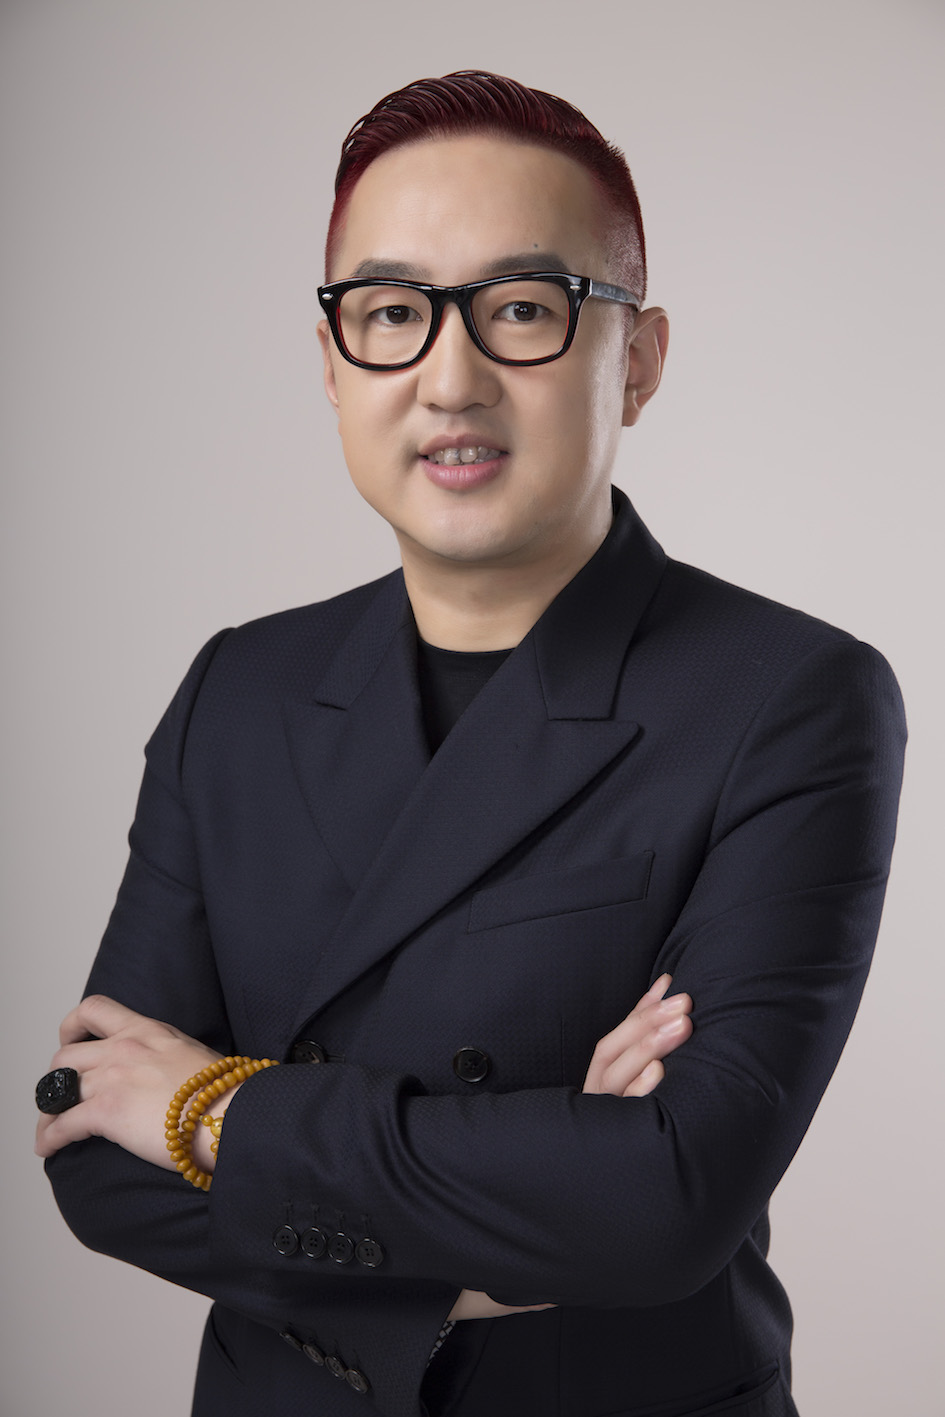 Read our interview of Bao Yifeng, co-founder of JingArt and Art021 art fairs -